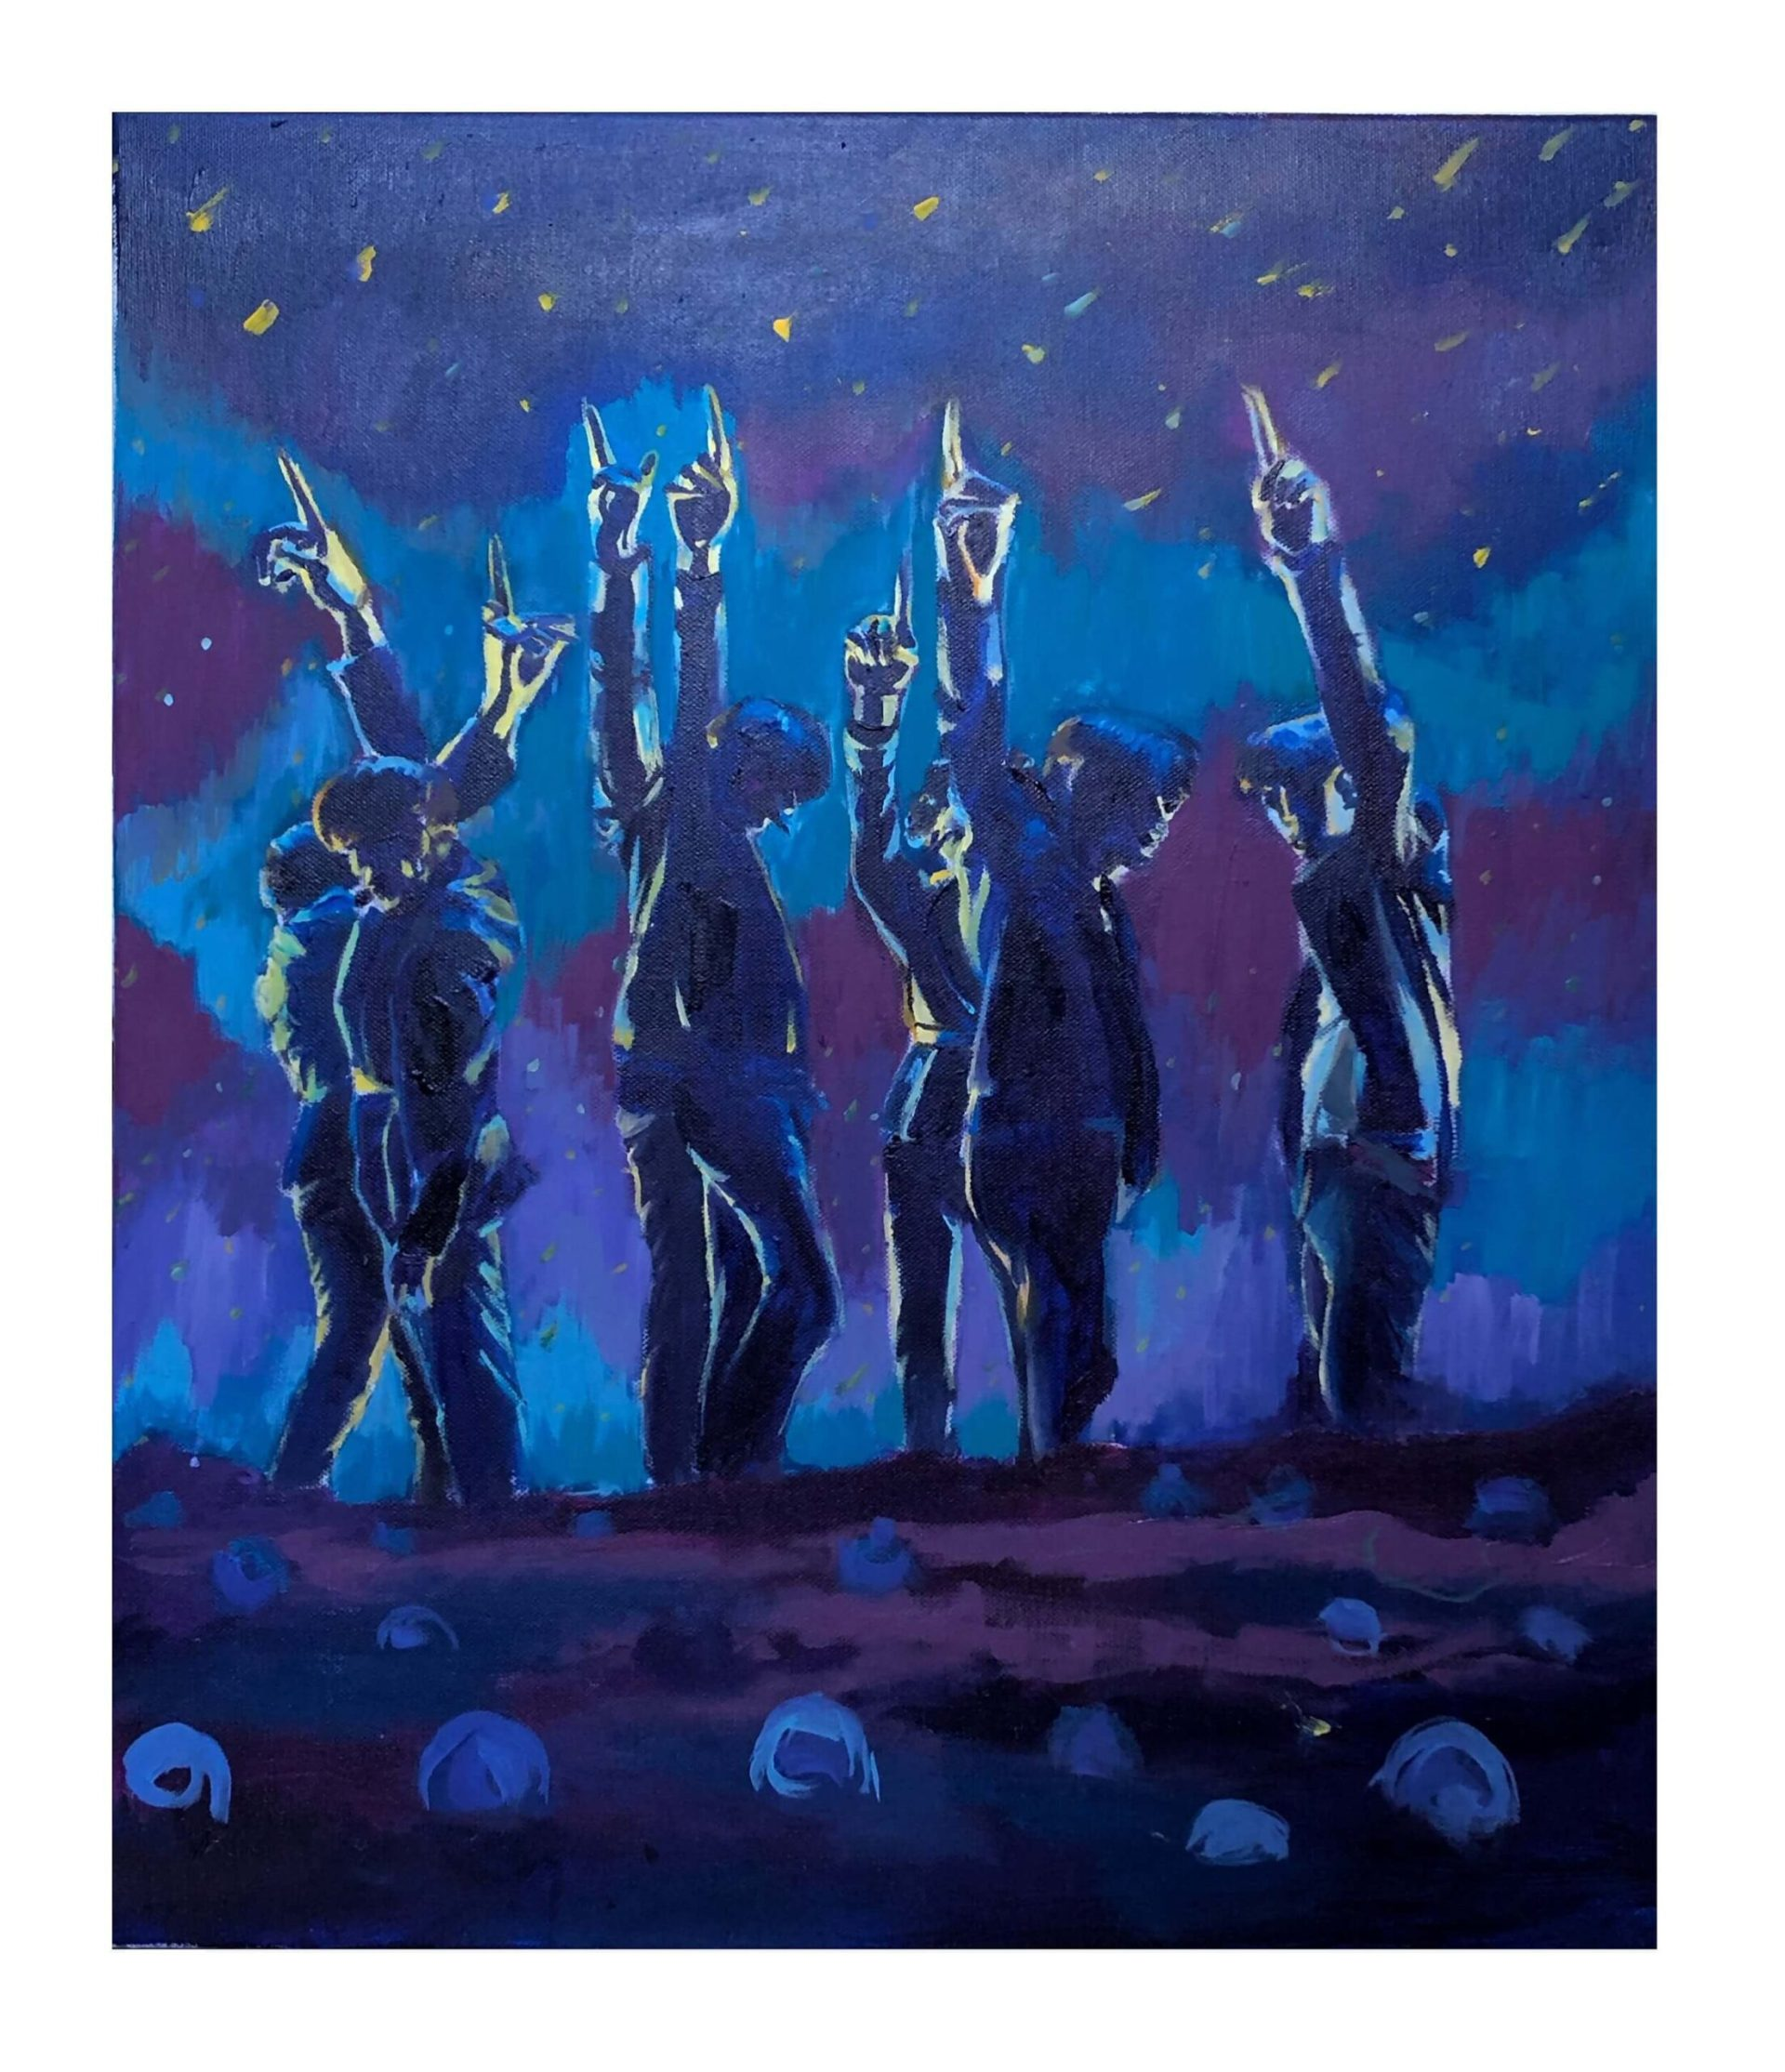 A painting of the members of BTS on stage pointing their fingers skyward